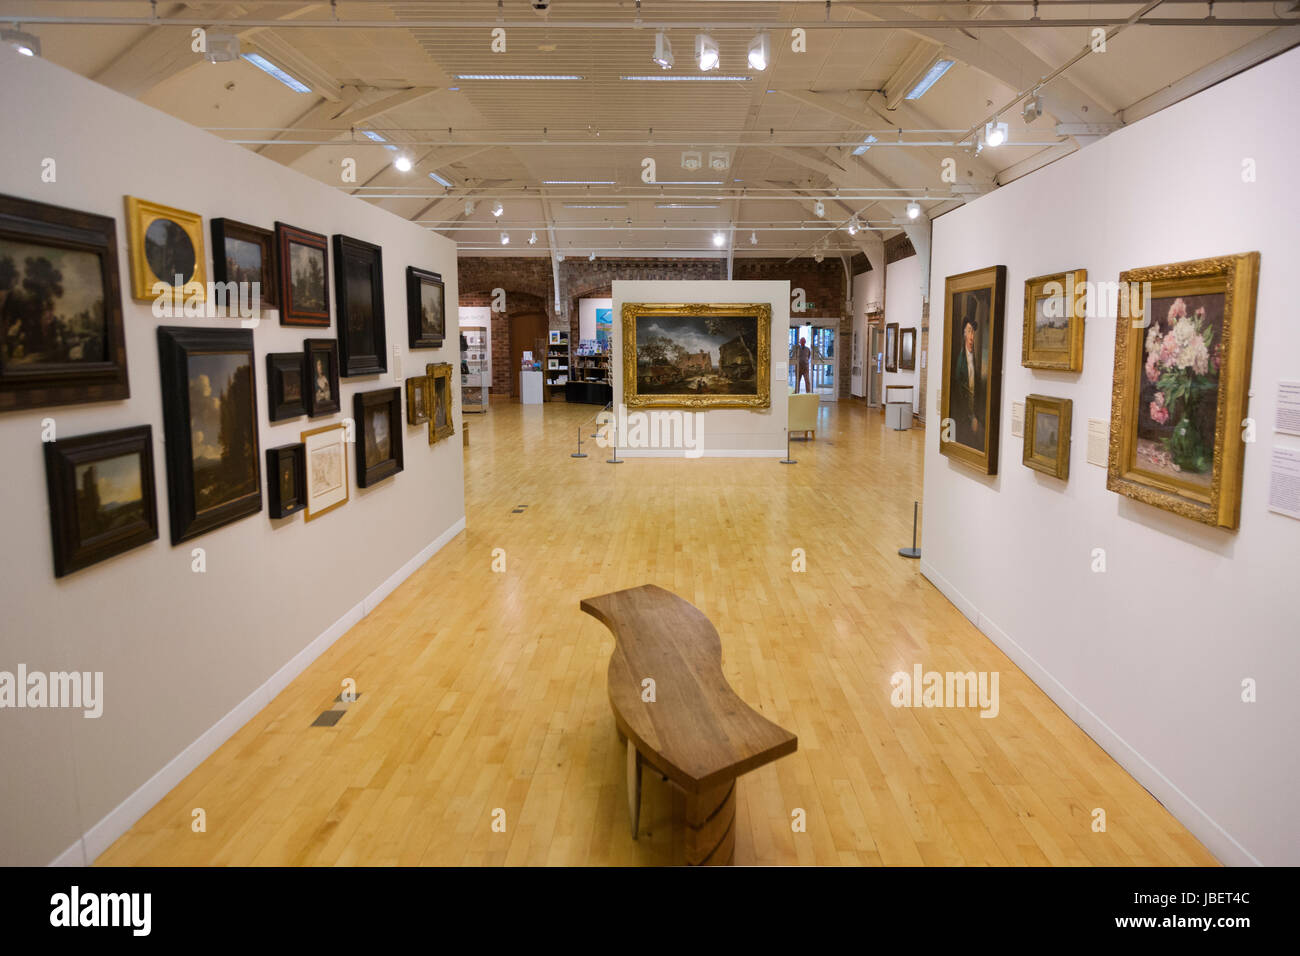 Interior / inside the Leamington Spa Art Gallery & Museum at the Royal Pump Rooms and Baths, Leamington Spa. - Stock Image